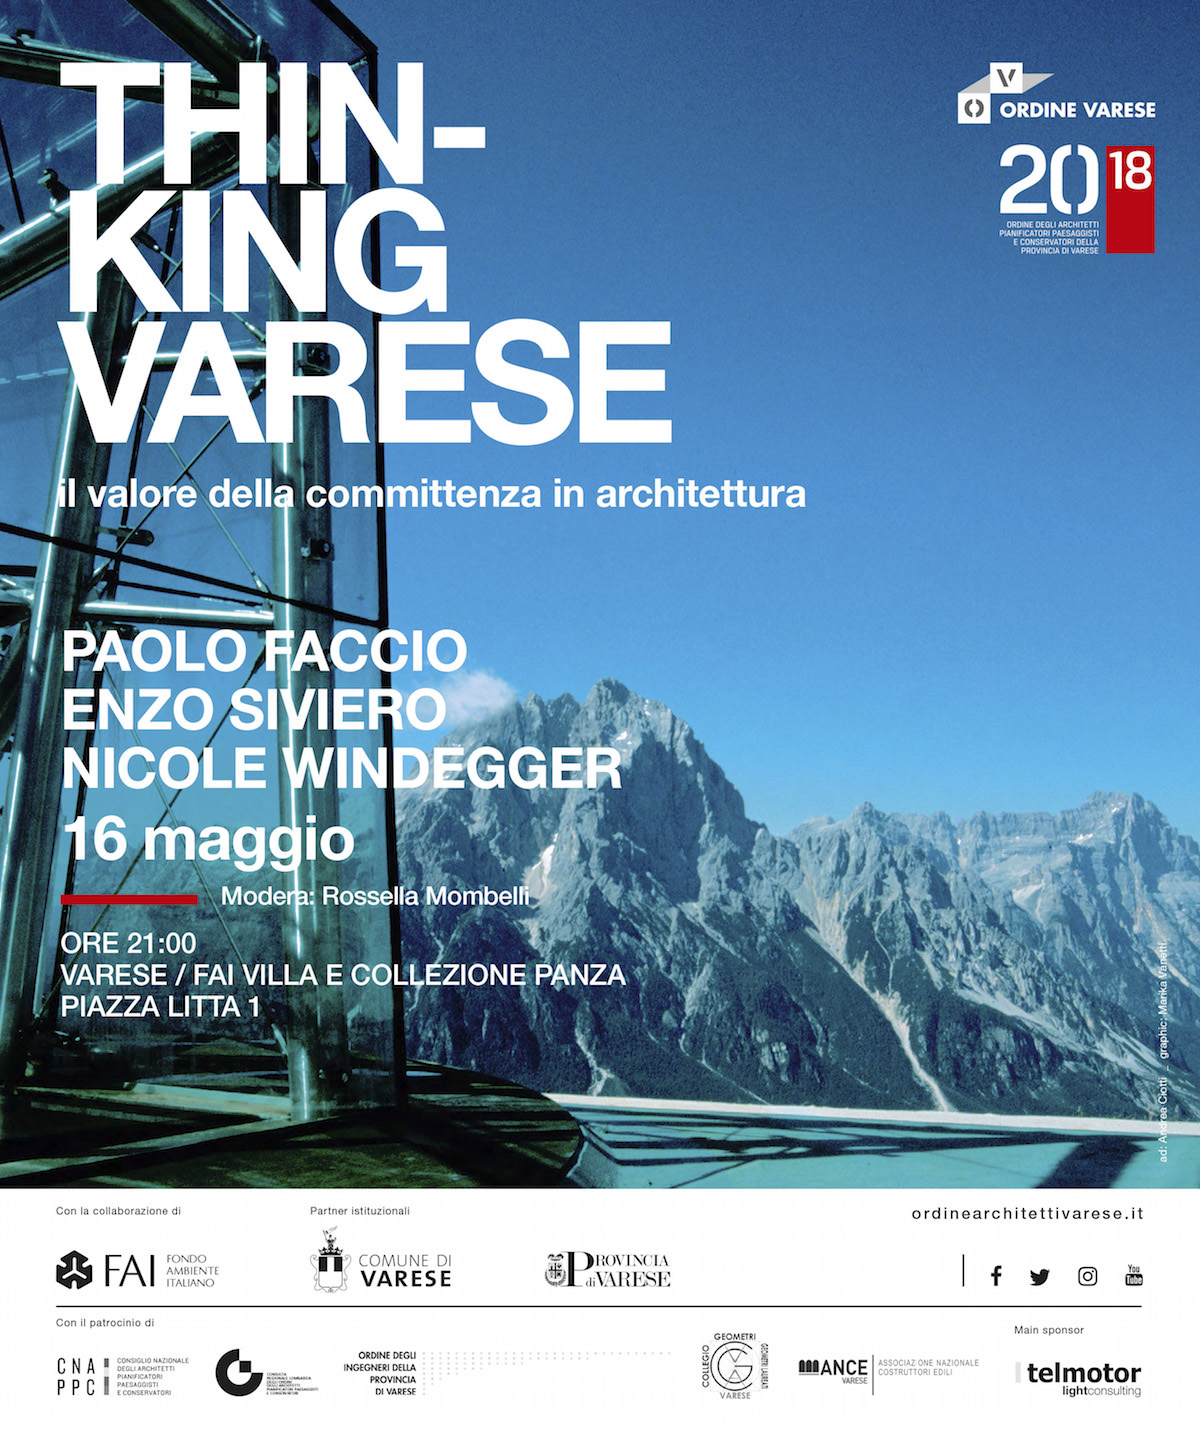 Messner Museum Varese TV3